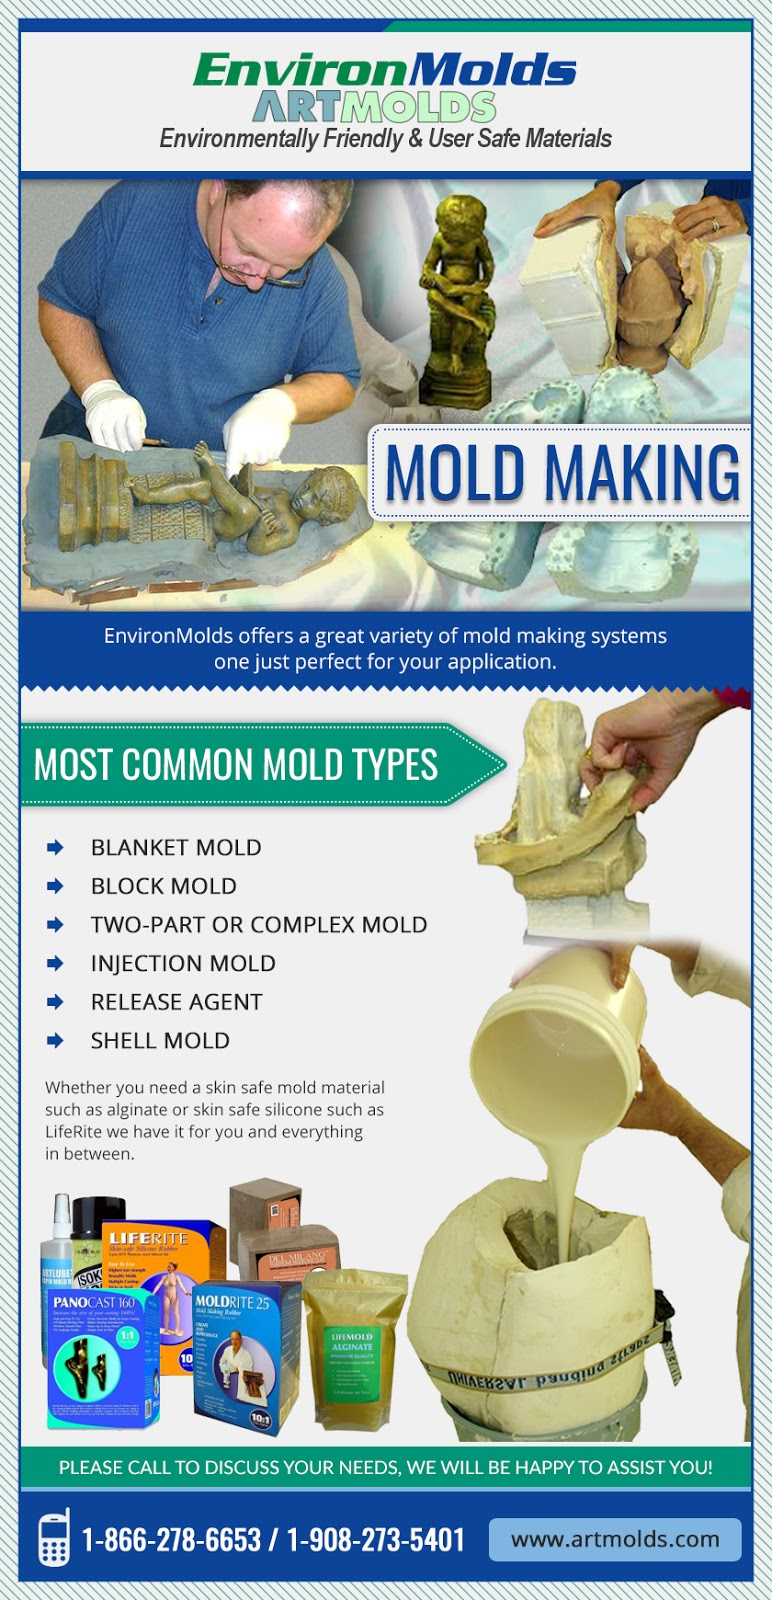 Mold making and Casting products through EnvironMolds, LLC